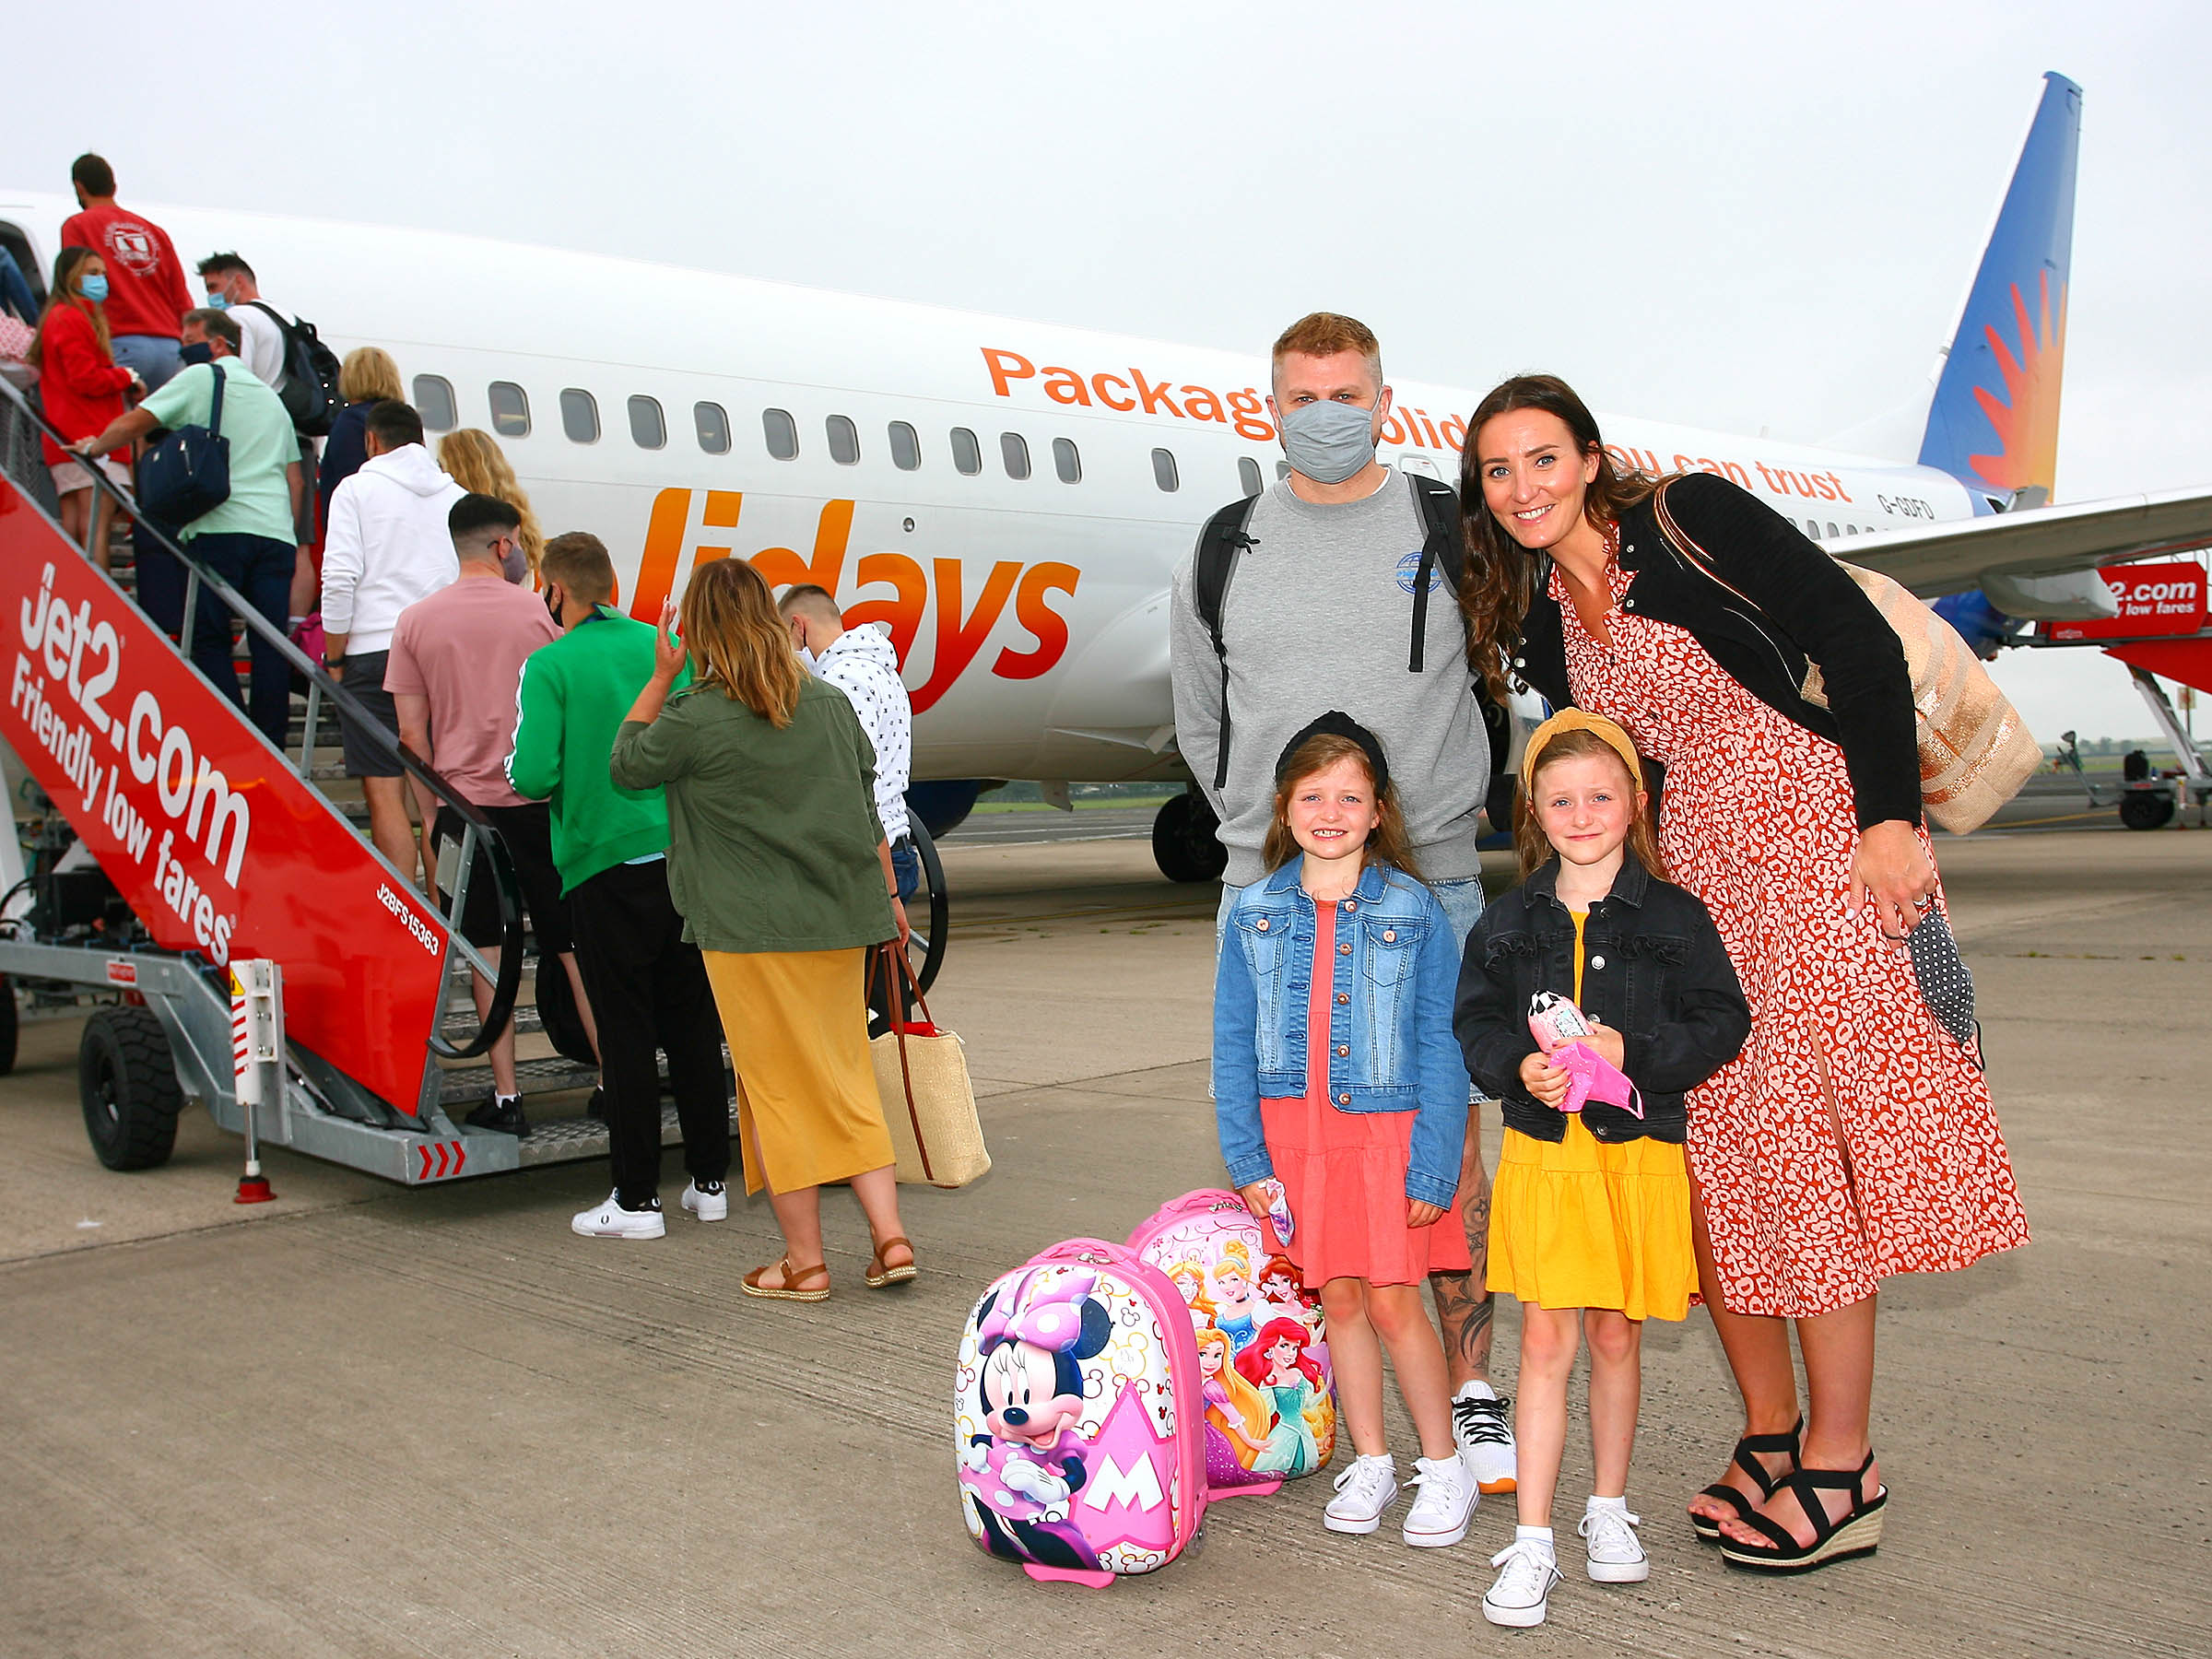 Jet2.com and Jet2holidays take to the skies again from Belfast International Airport!